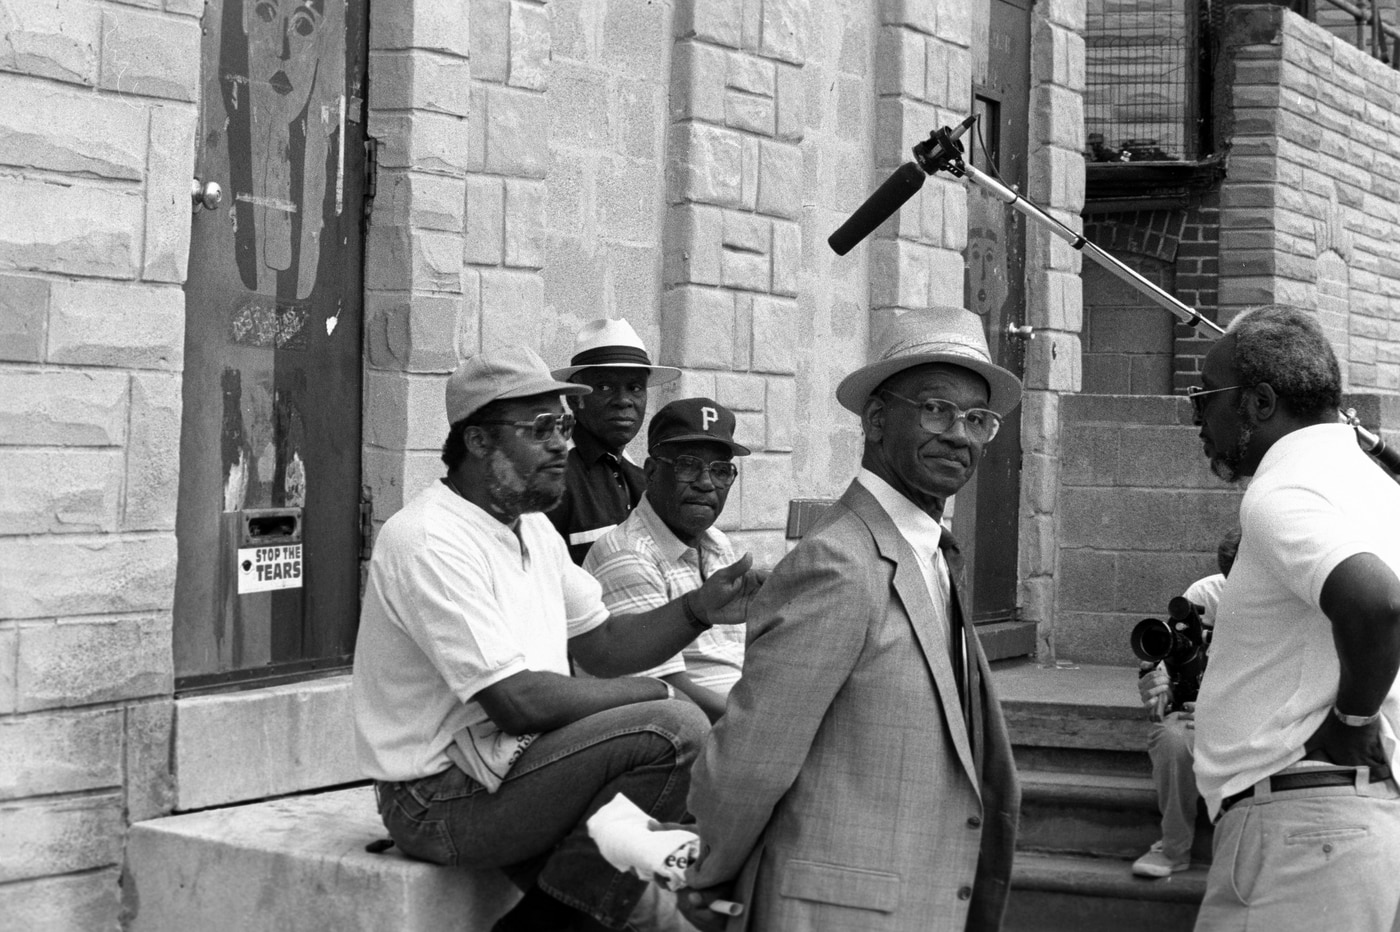 'The Bard of Braddock' comes to Philly this weekend to host screenings of his films about working people